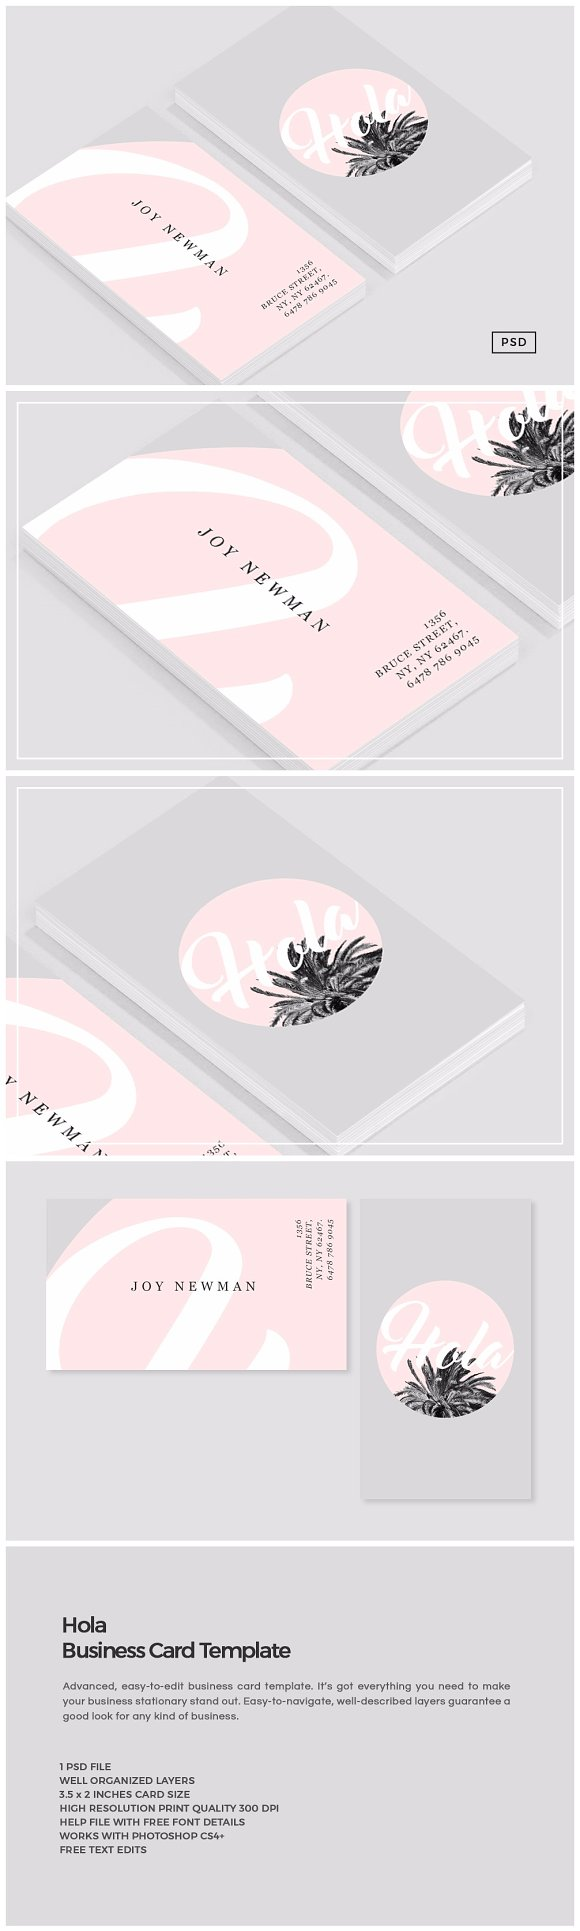 Hola Business Card Template ~ Business Card Templates ~ Creative ...